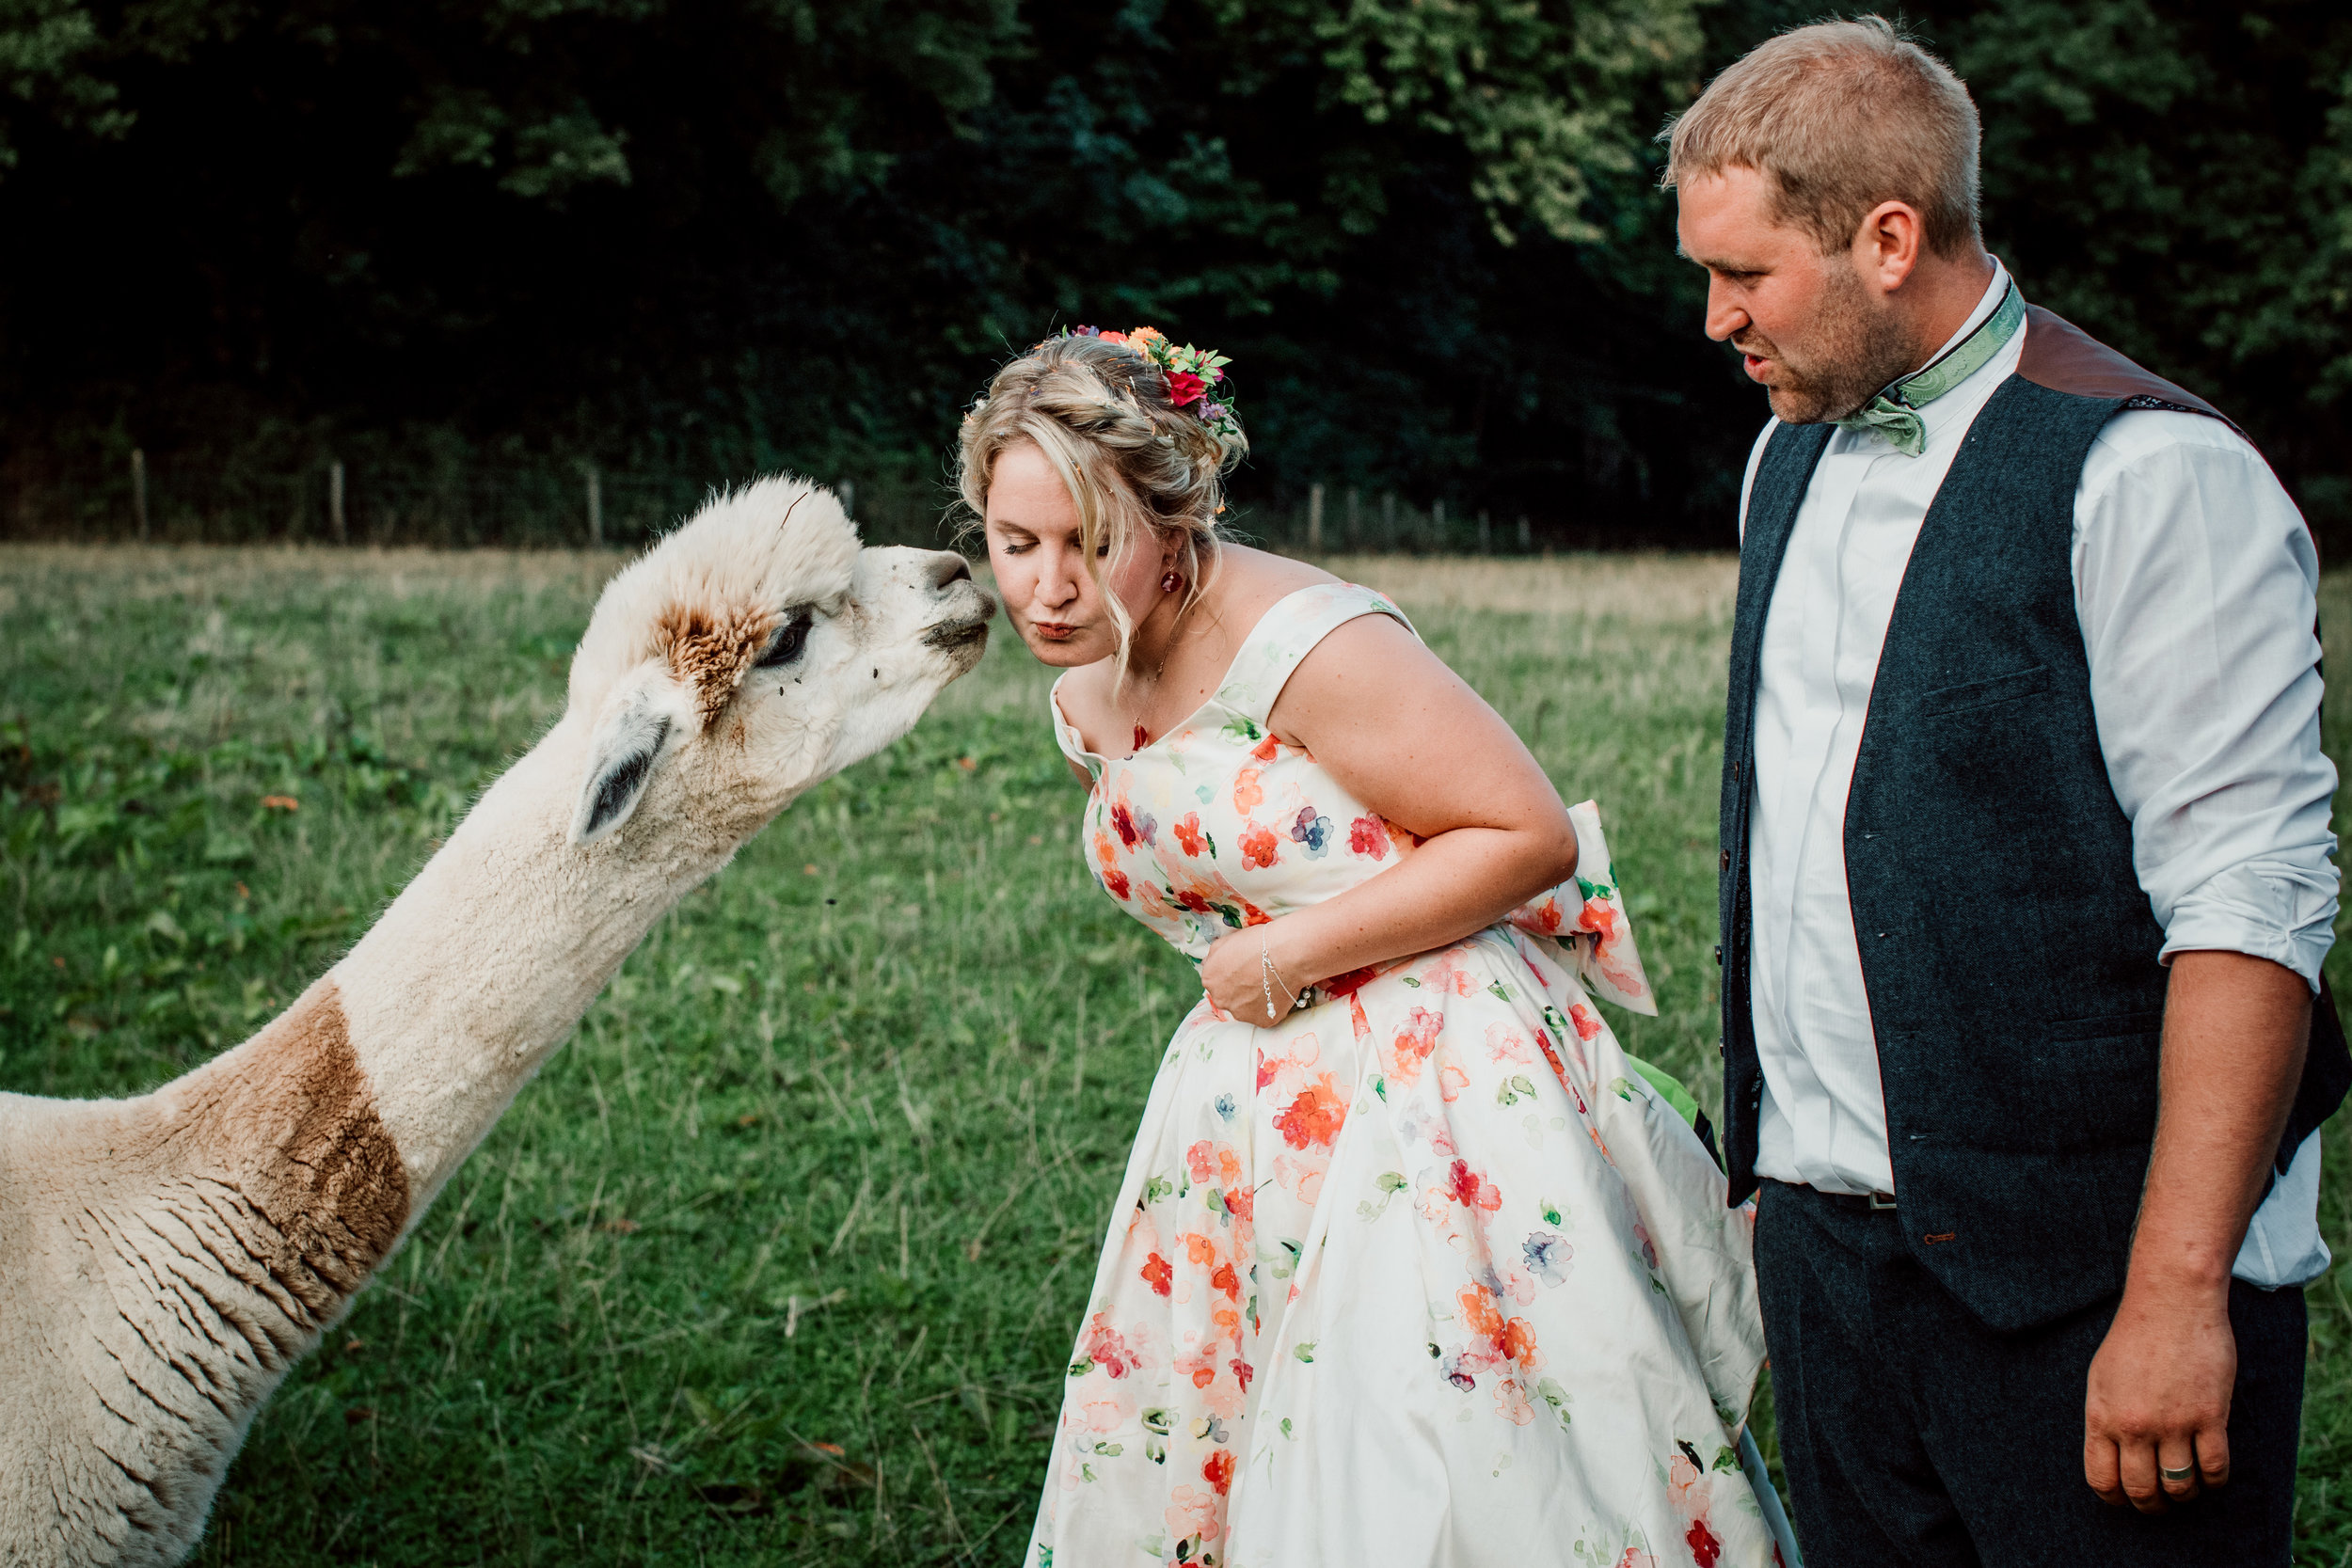 JON_HARPER_COTSWOLD_WEDDING_PHOTOGRAPHY_LITTLE_ORCHARD_ALPACAS_447_OF_568.JPG